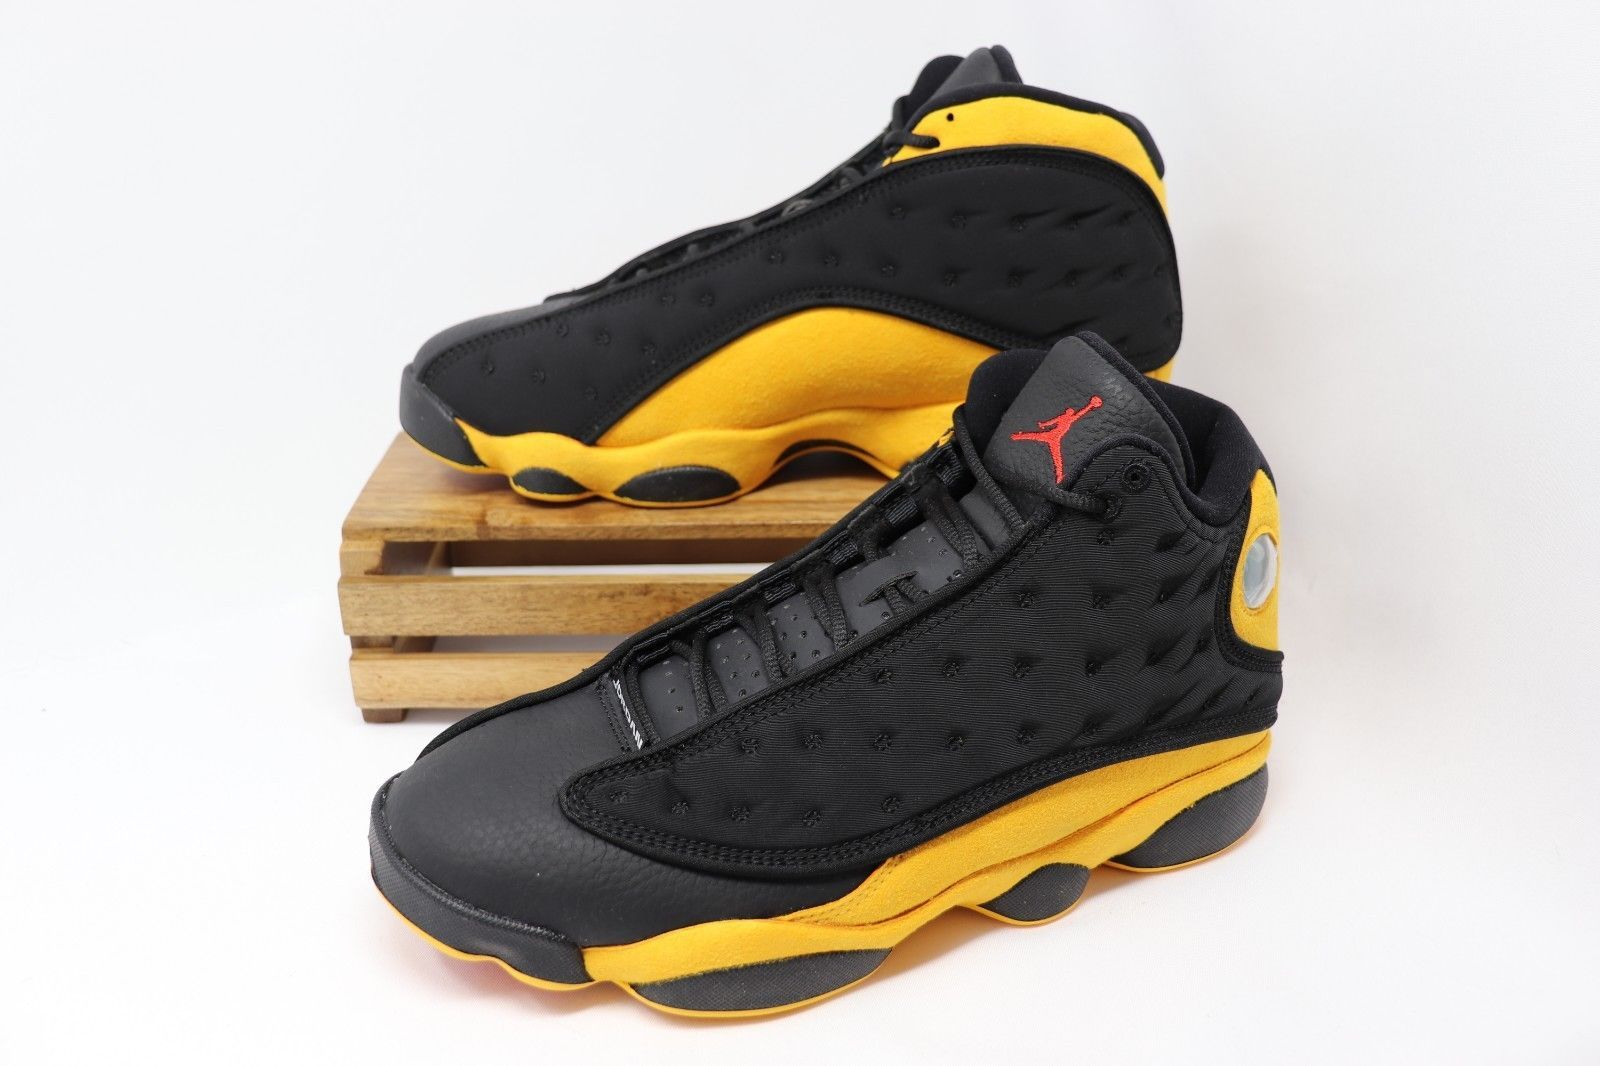 fb42df559e0 Nike Air Jordan 13 XIII Retro Melo Black Yellow Red Class of 2002  414571-035 NEW